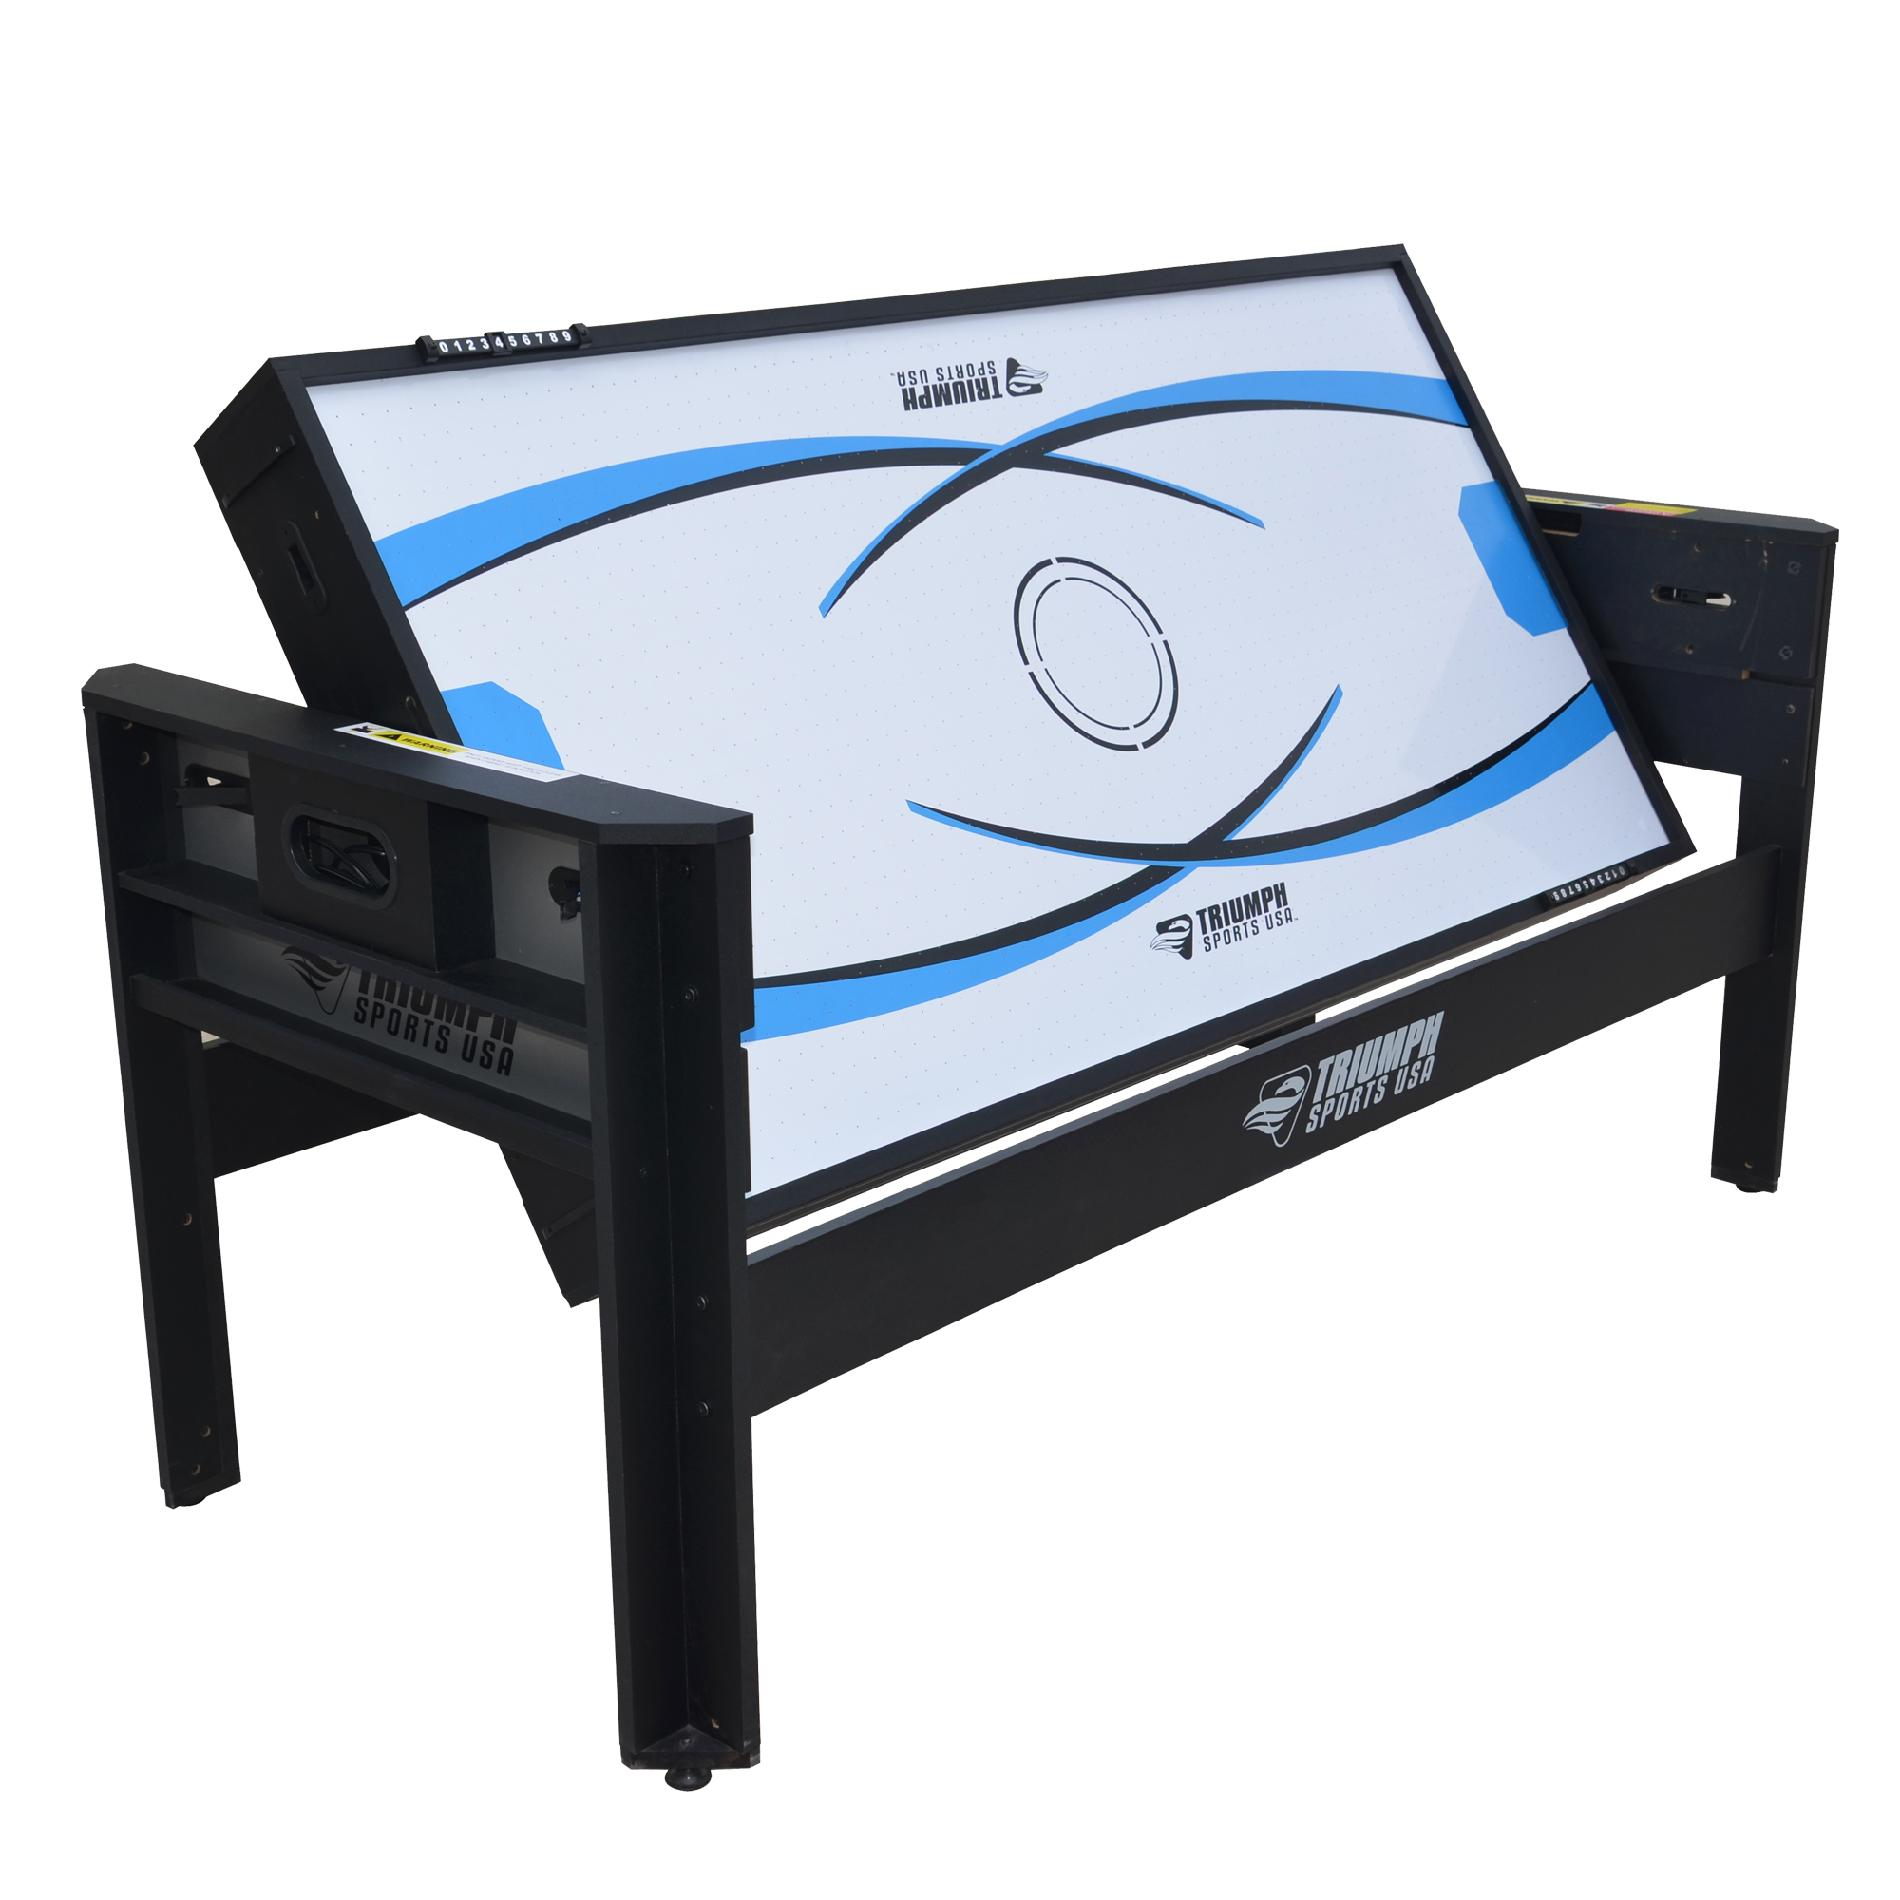 Triumph Sports 6Ft. 4-in-1 Evolution Multi Game Swivel Table